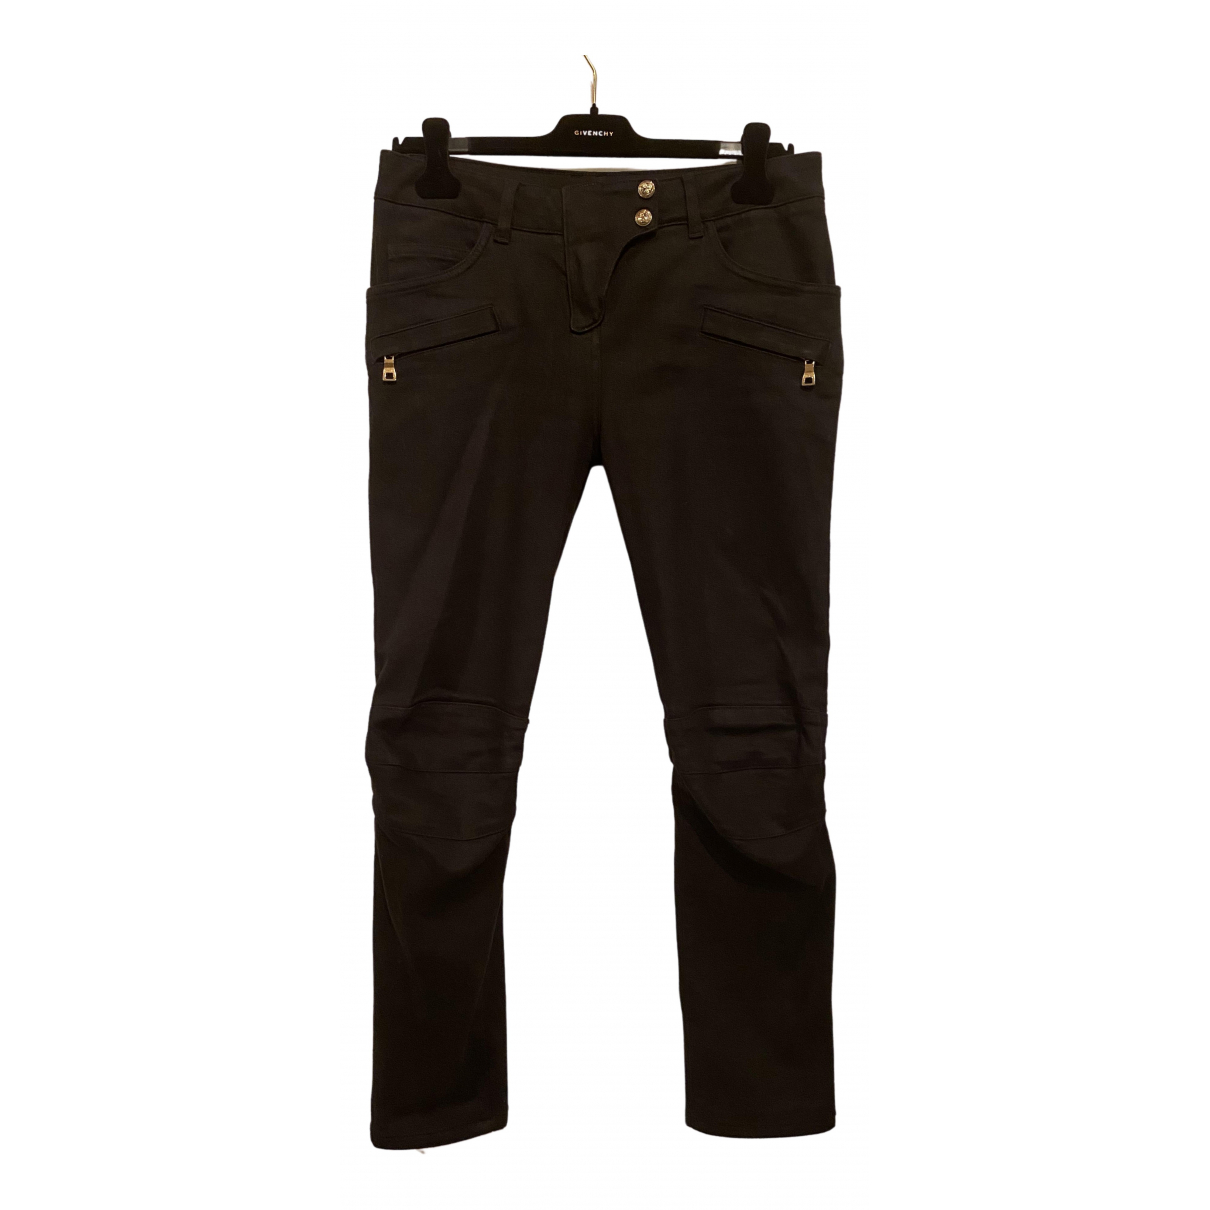 Balmain \N Black Denim - Jeans Trousers for Women 38 FR